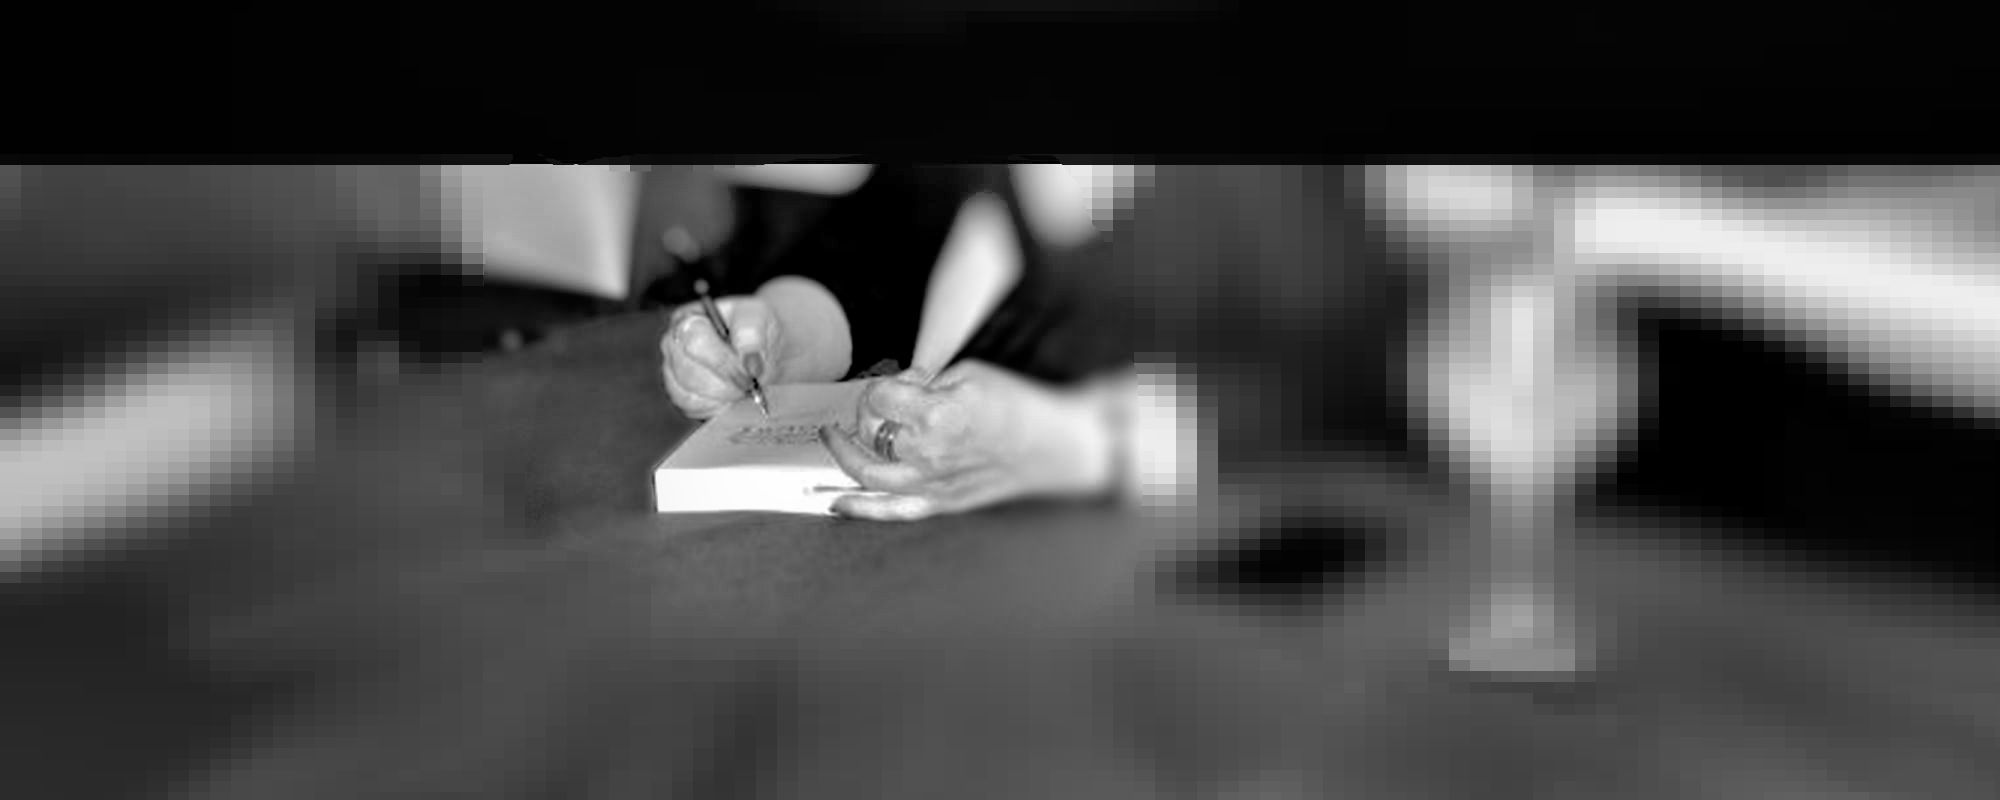 Signing_Hands_BW